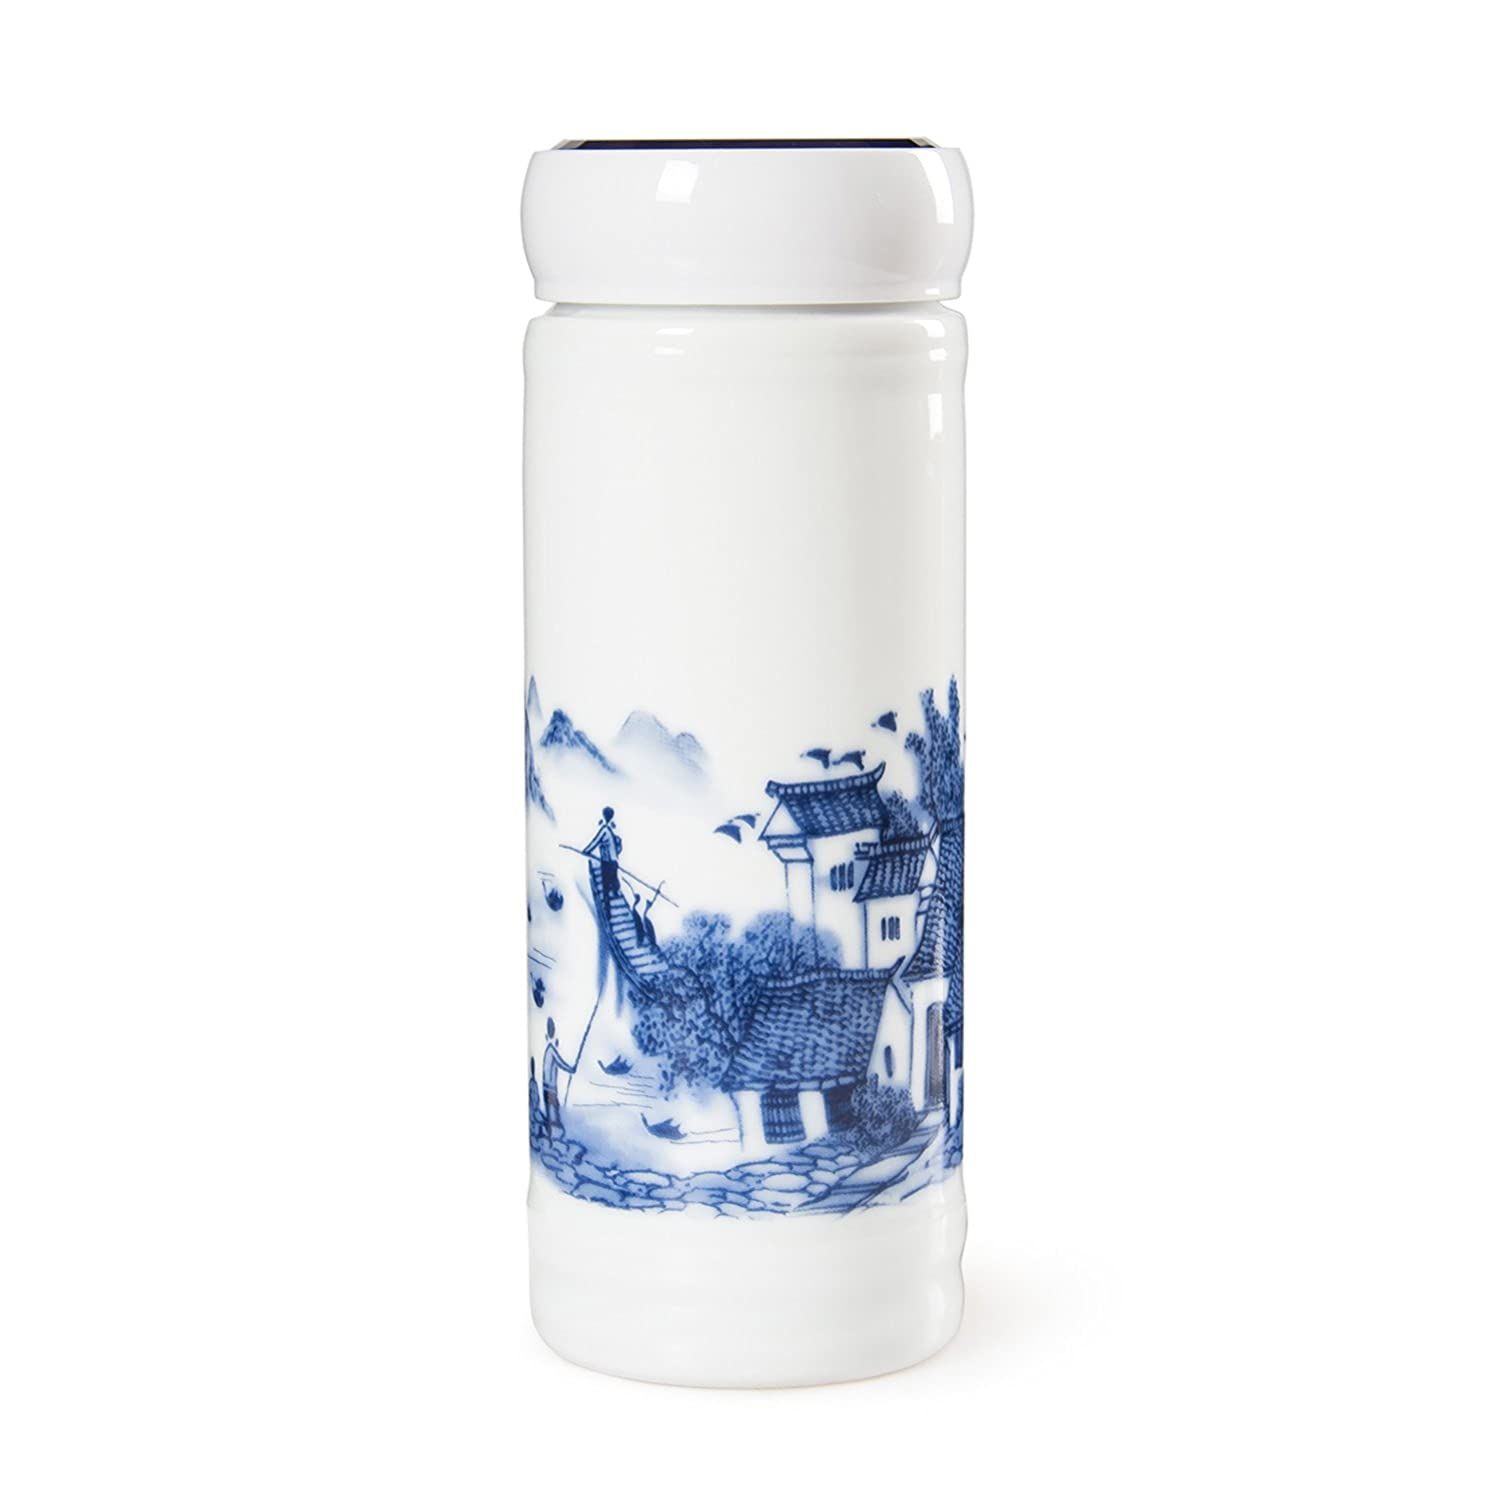 CHINZEE Double Walled Insulated Travel Mug Ceramic Leak Proof with Screw Lid - Blue&White Porcelain Cheerz Culture